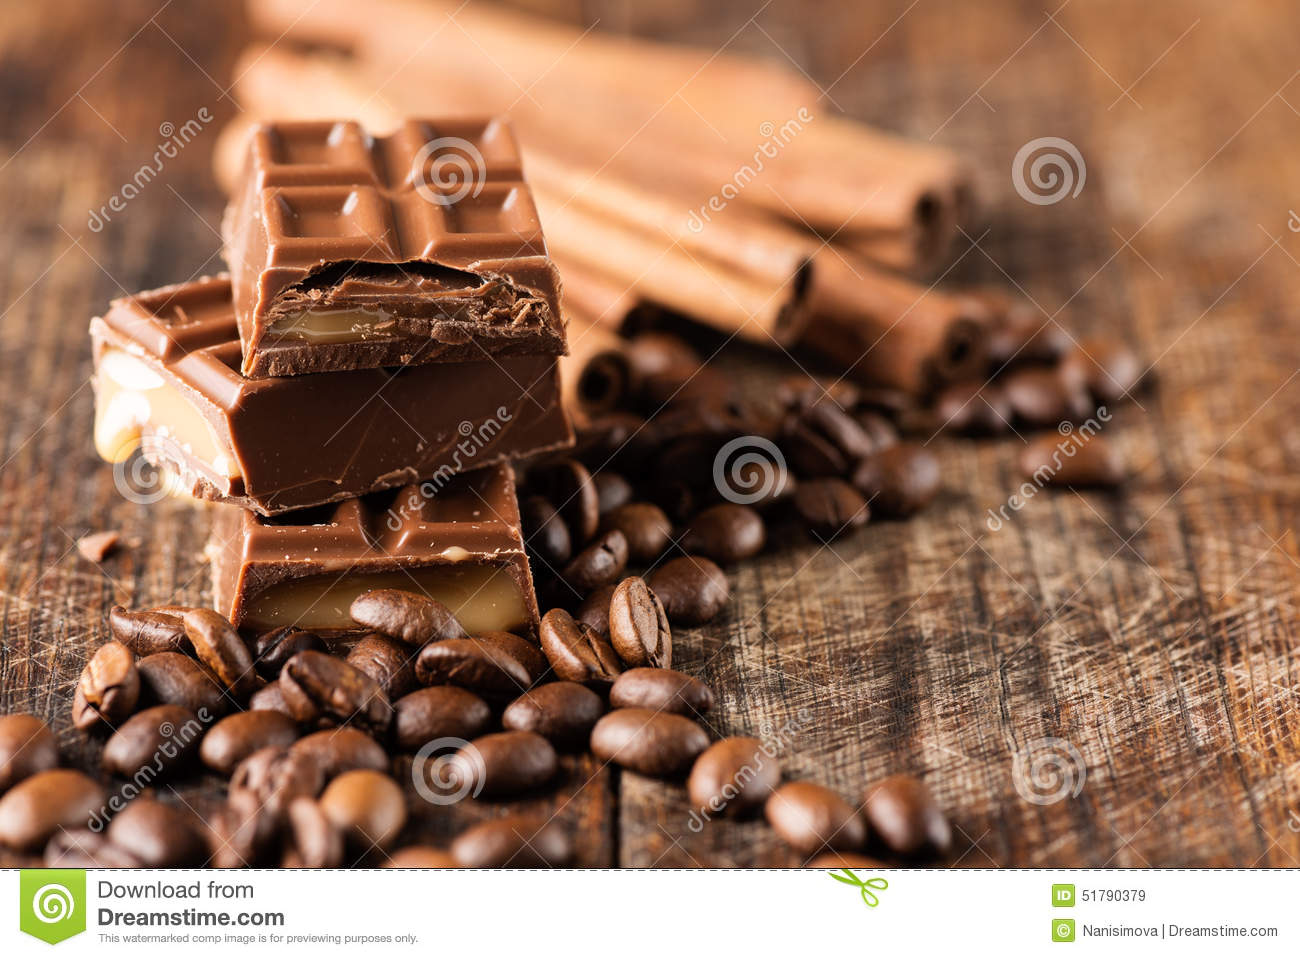 chocolate candy bar cofee beans cinnamon on wooden table